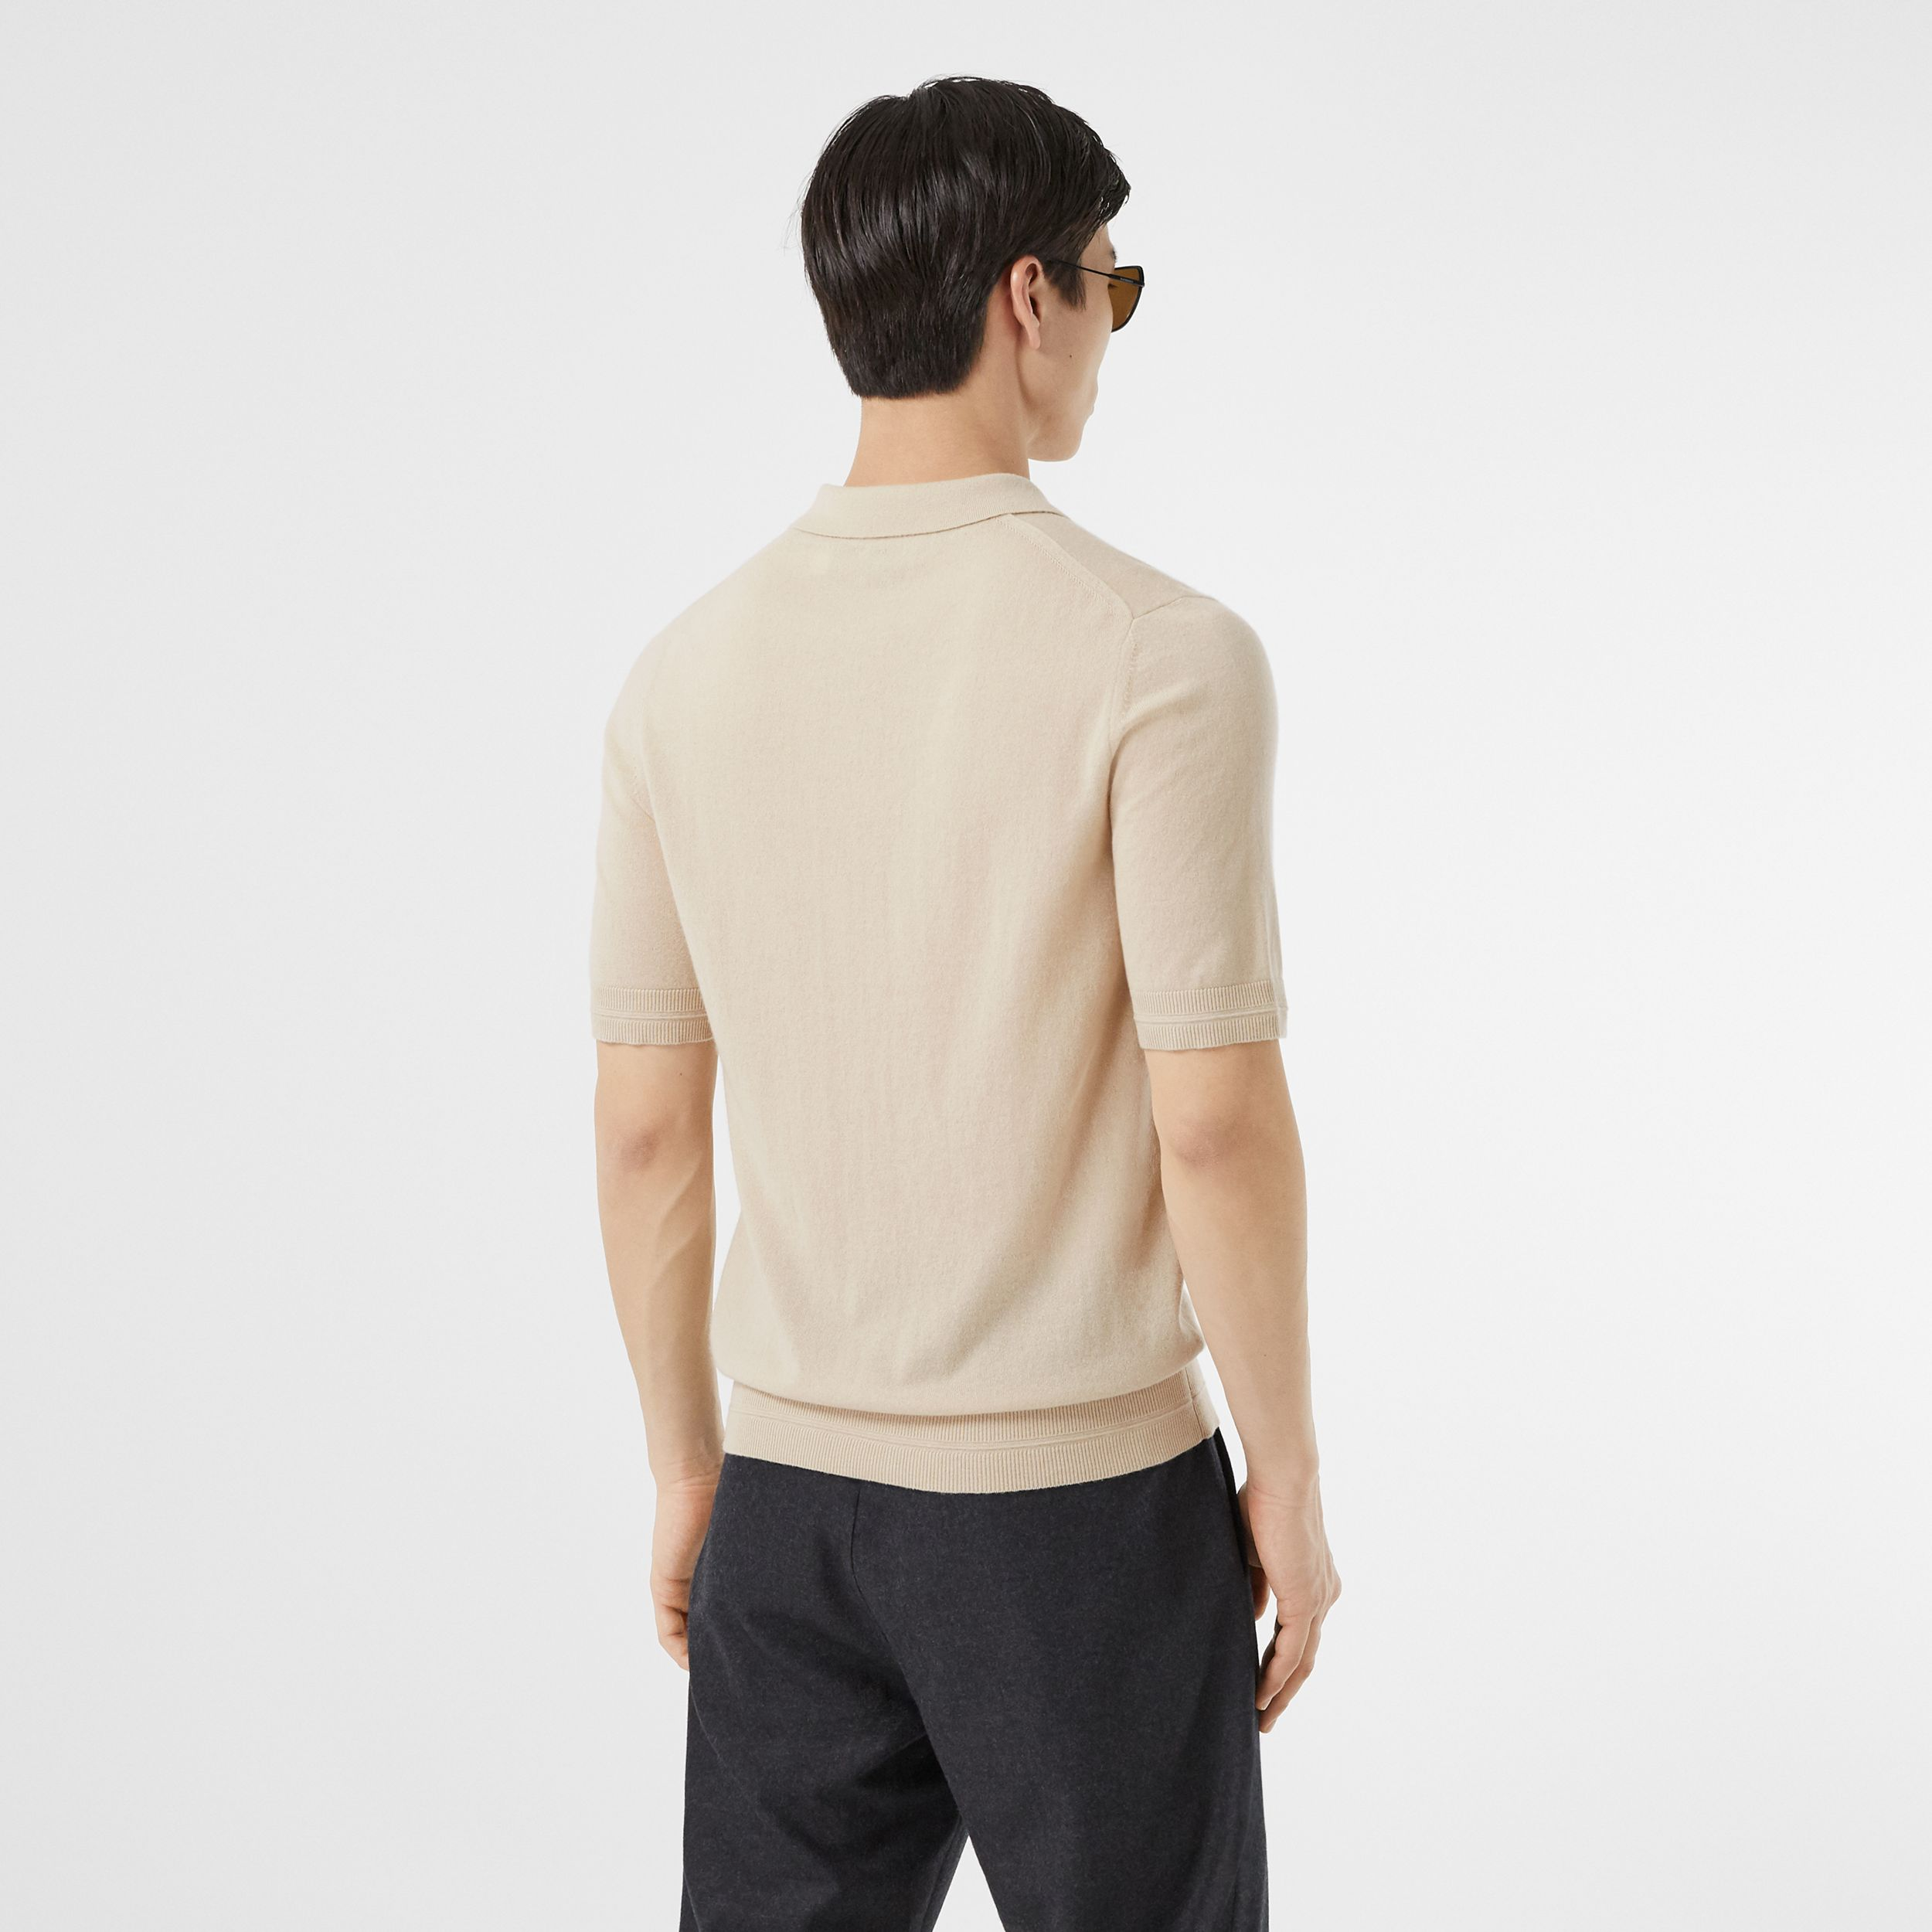 Monogram Motif Cashmere Polo Shirt in Soft Fawn | Burberry - 3